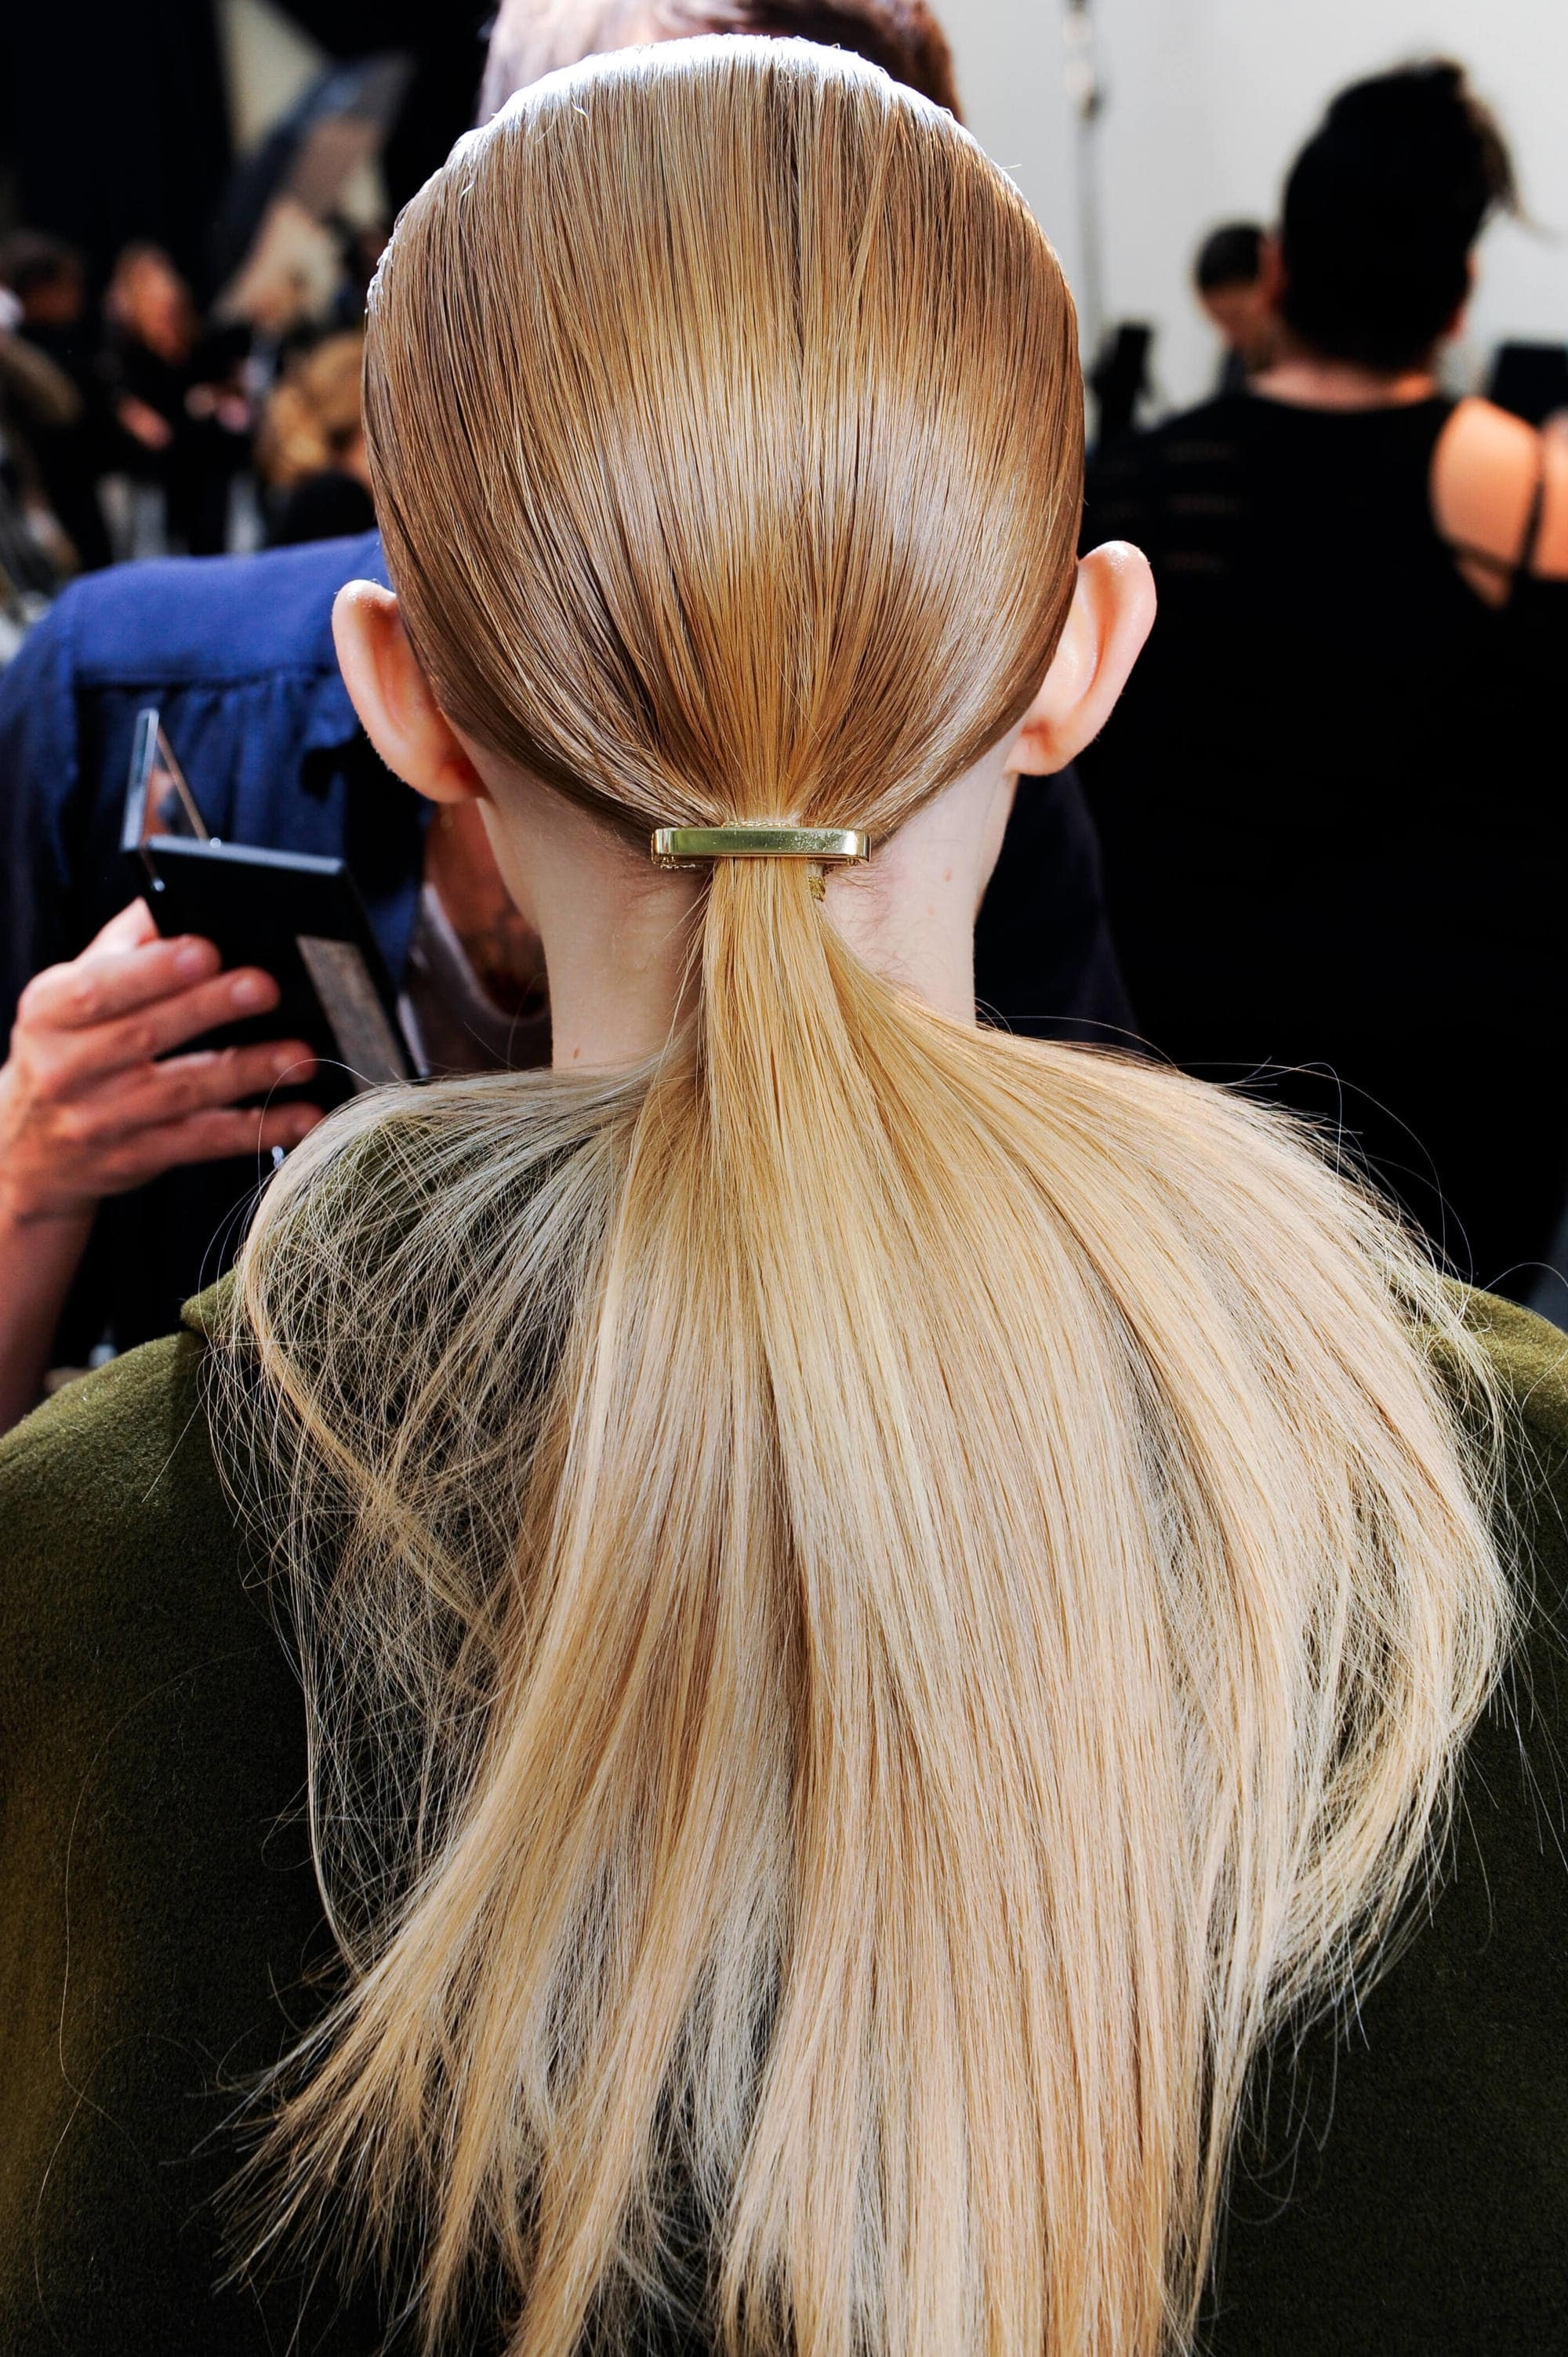 Thick Hair Ponytail Hairstyle Ideas And Inspiration For Valentine's Day For Popular Bubbly Blonde Pony Hairstyles (View 14 of 20)